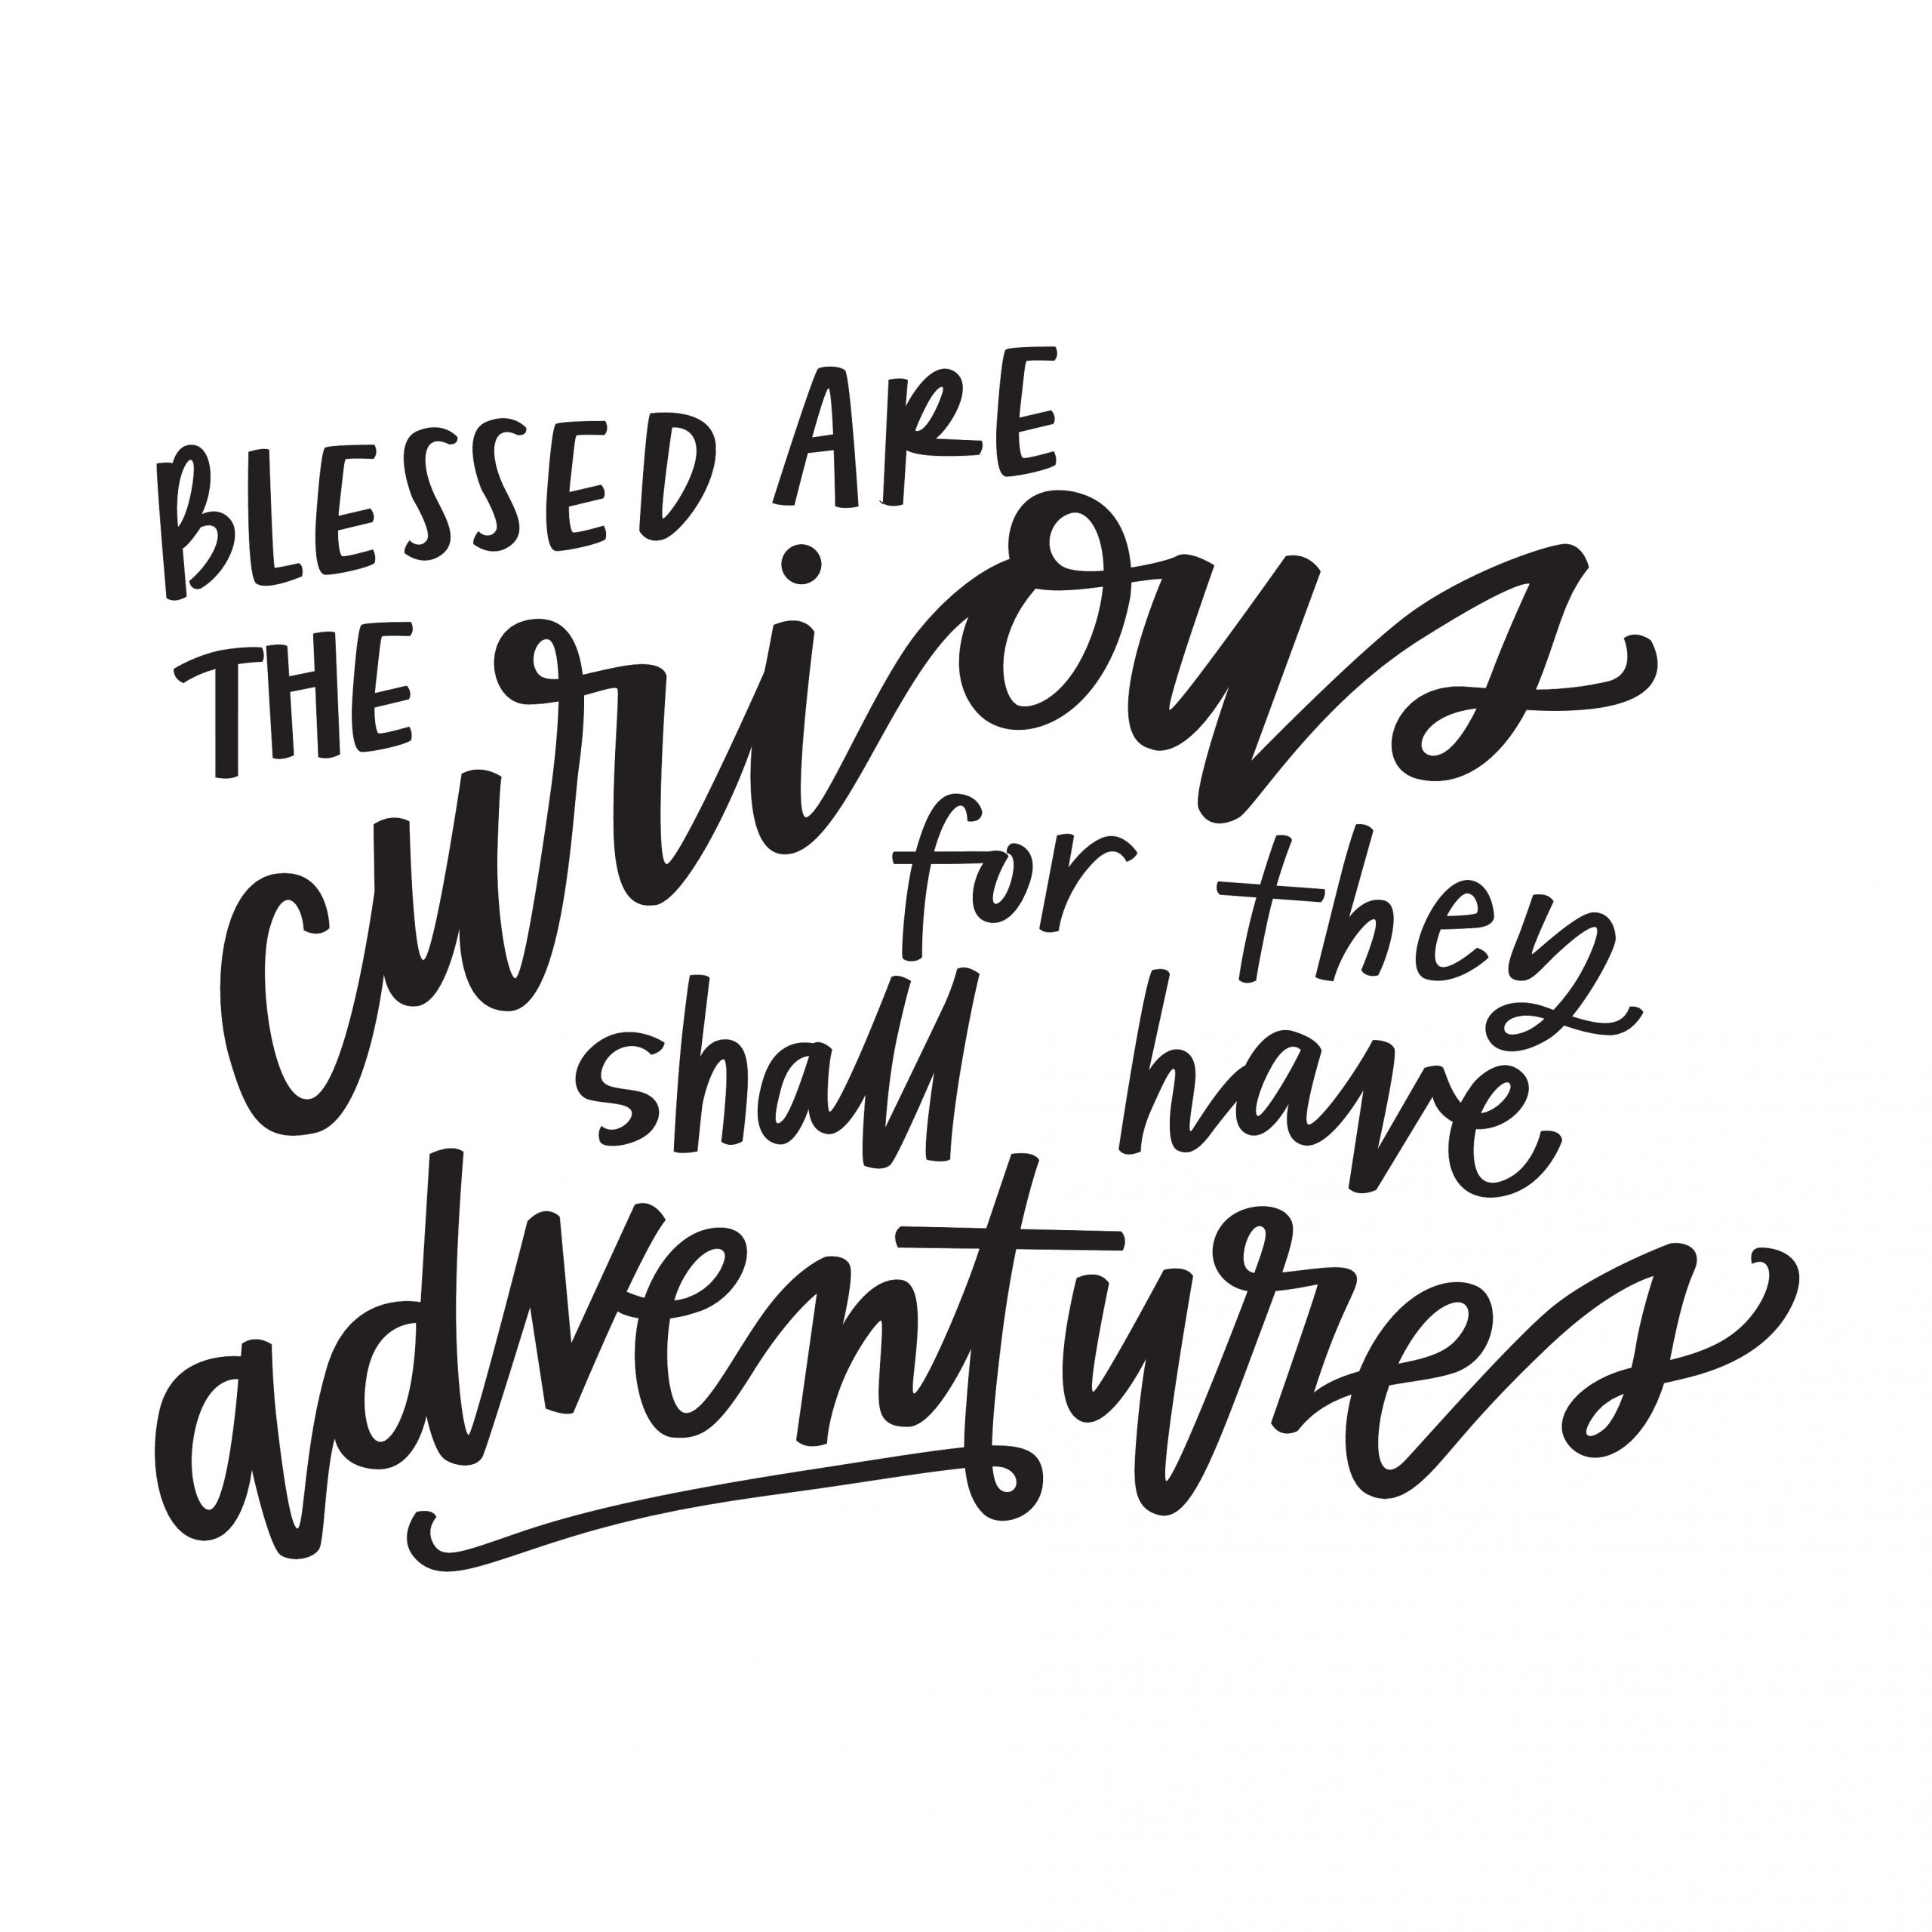 Blessed are the Curious…